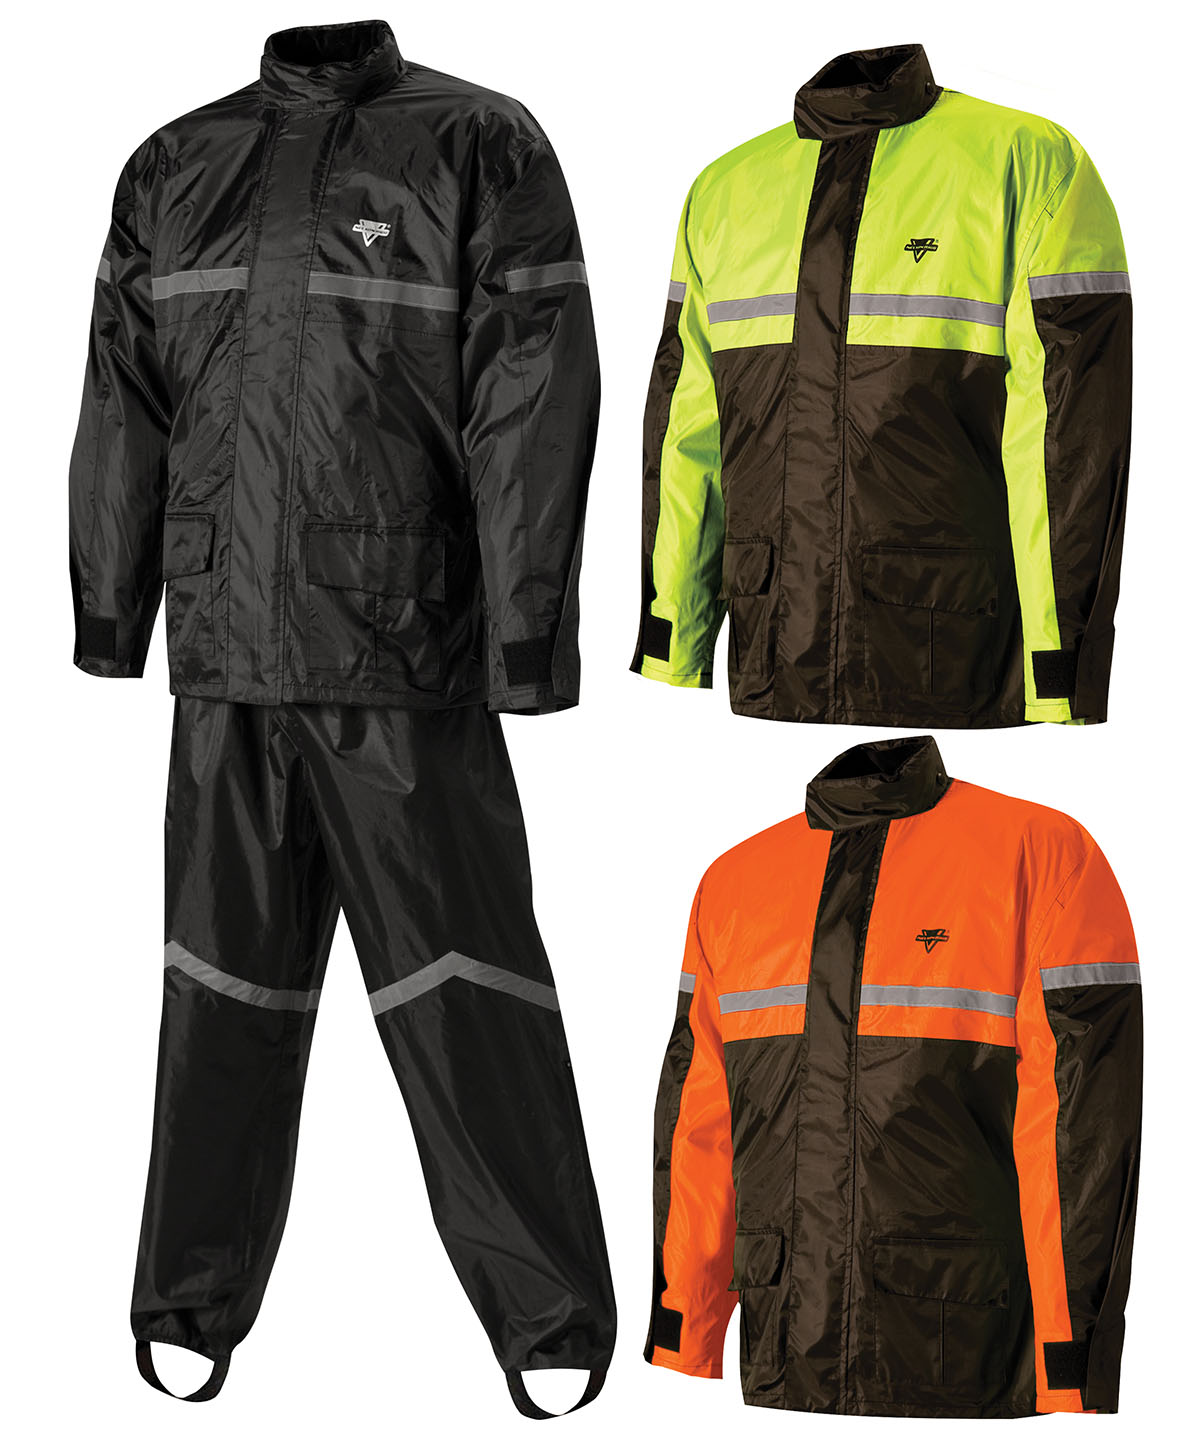 Nelson rigg sr 6000 stormrider motorcycle rain suit for Motor cycle rain gear